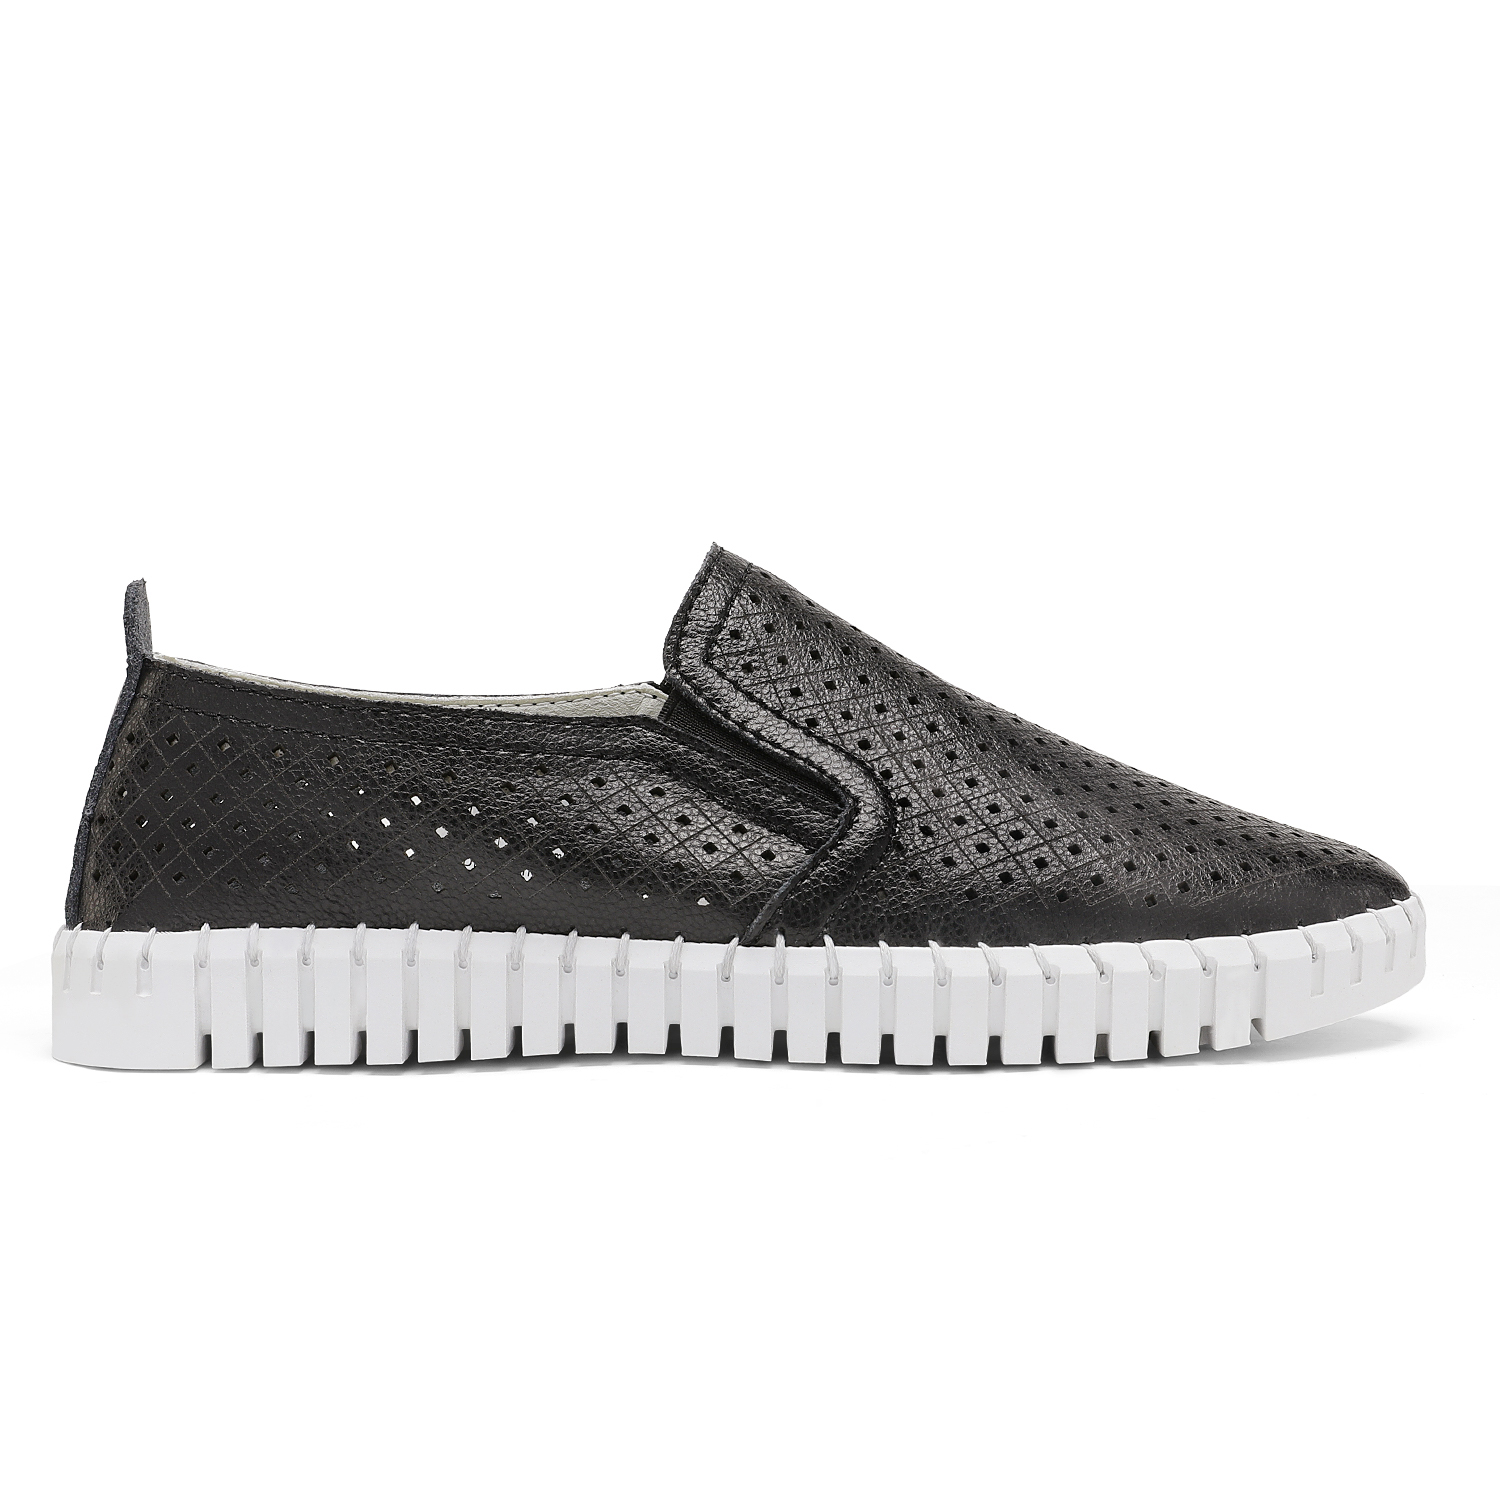 DREAM-PAIRS-Women-s-Breathable-Sneaker-Slip-On-Loafers-Comfortable-Flat-Shoes thumbnail 10